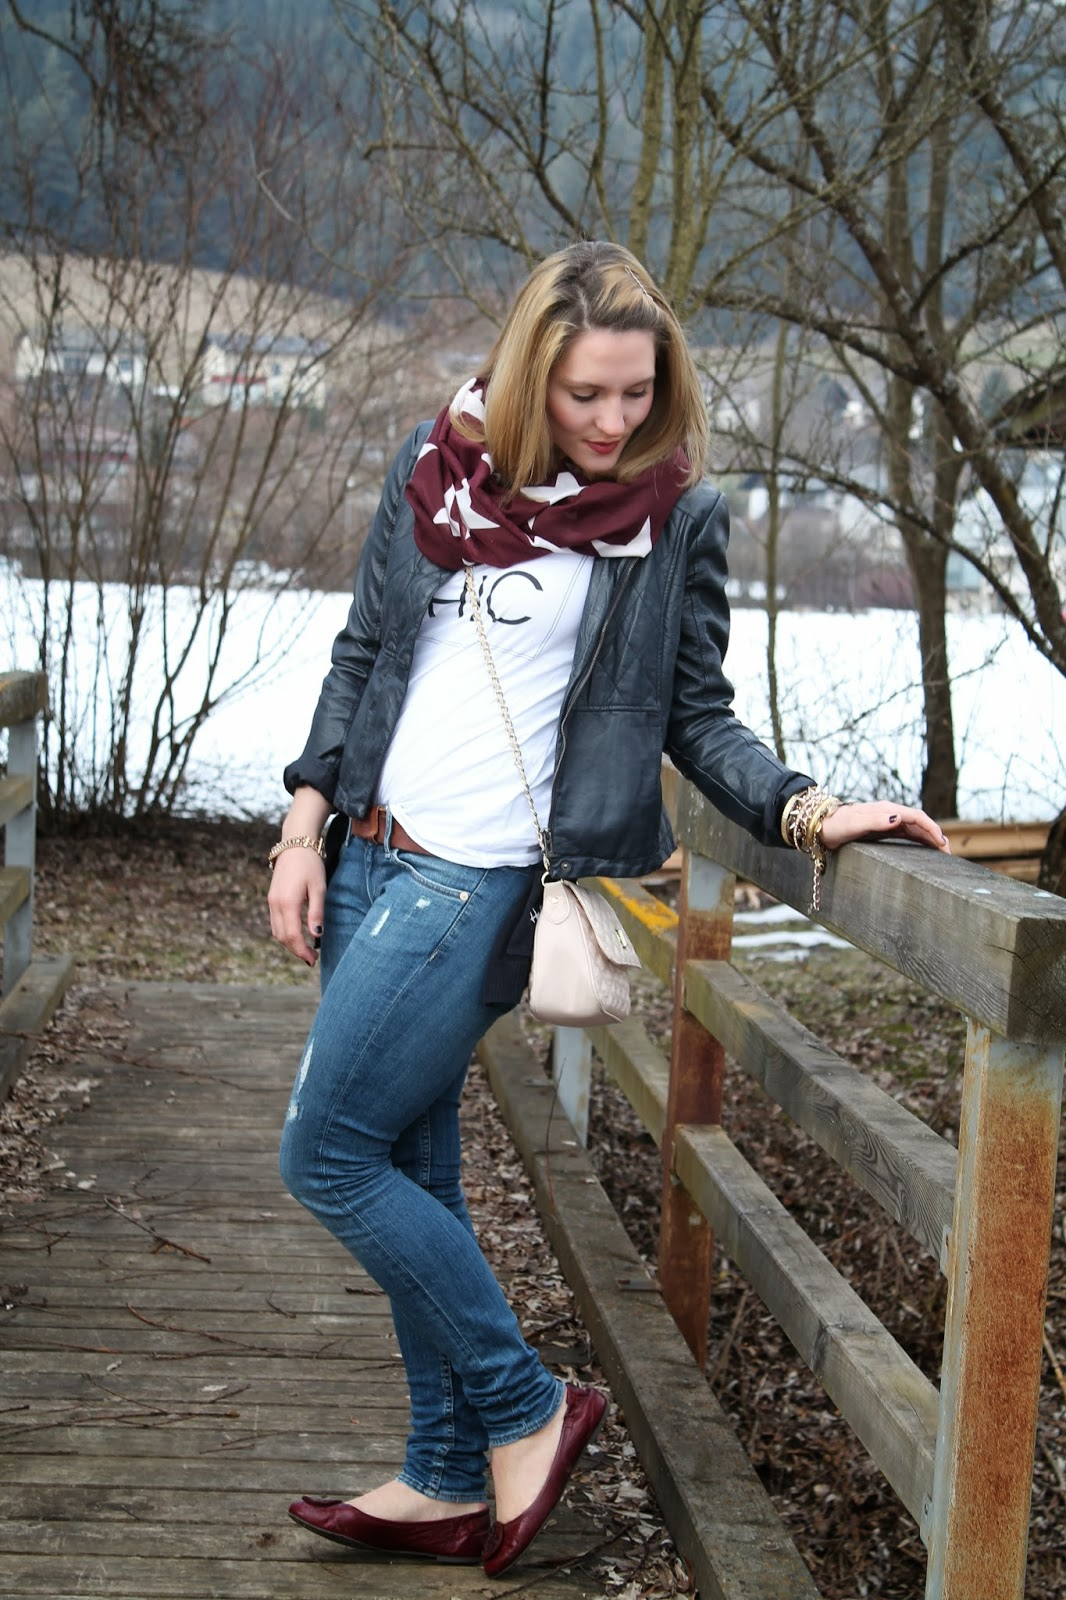 fashionblogger austria österreich carinthia kärnten klagenfurt köttmannsdorf tory burch flats ballerinas h&m jeans shirt statement shirt asos flapbag crossbodybag tom tailor leather jacket red scarf stars persunmall bracelet arm party spring 2014 style frühling streetstyle